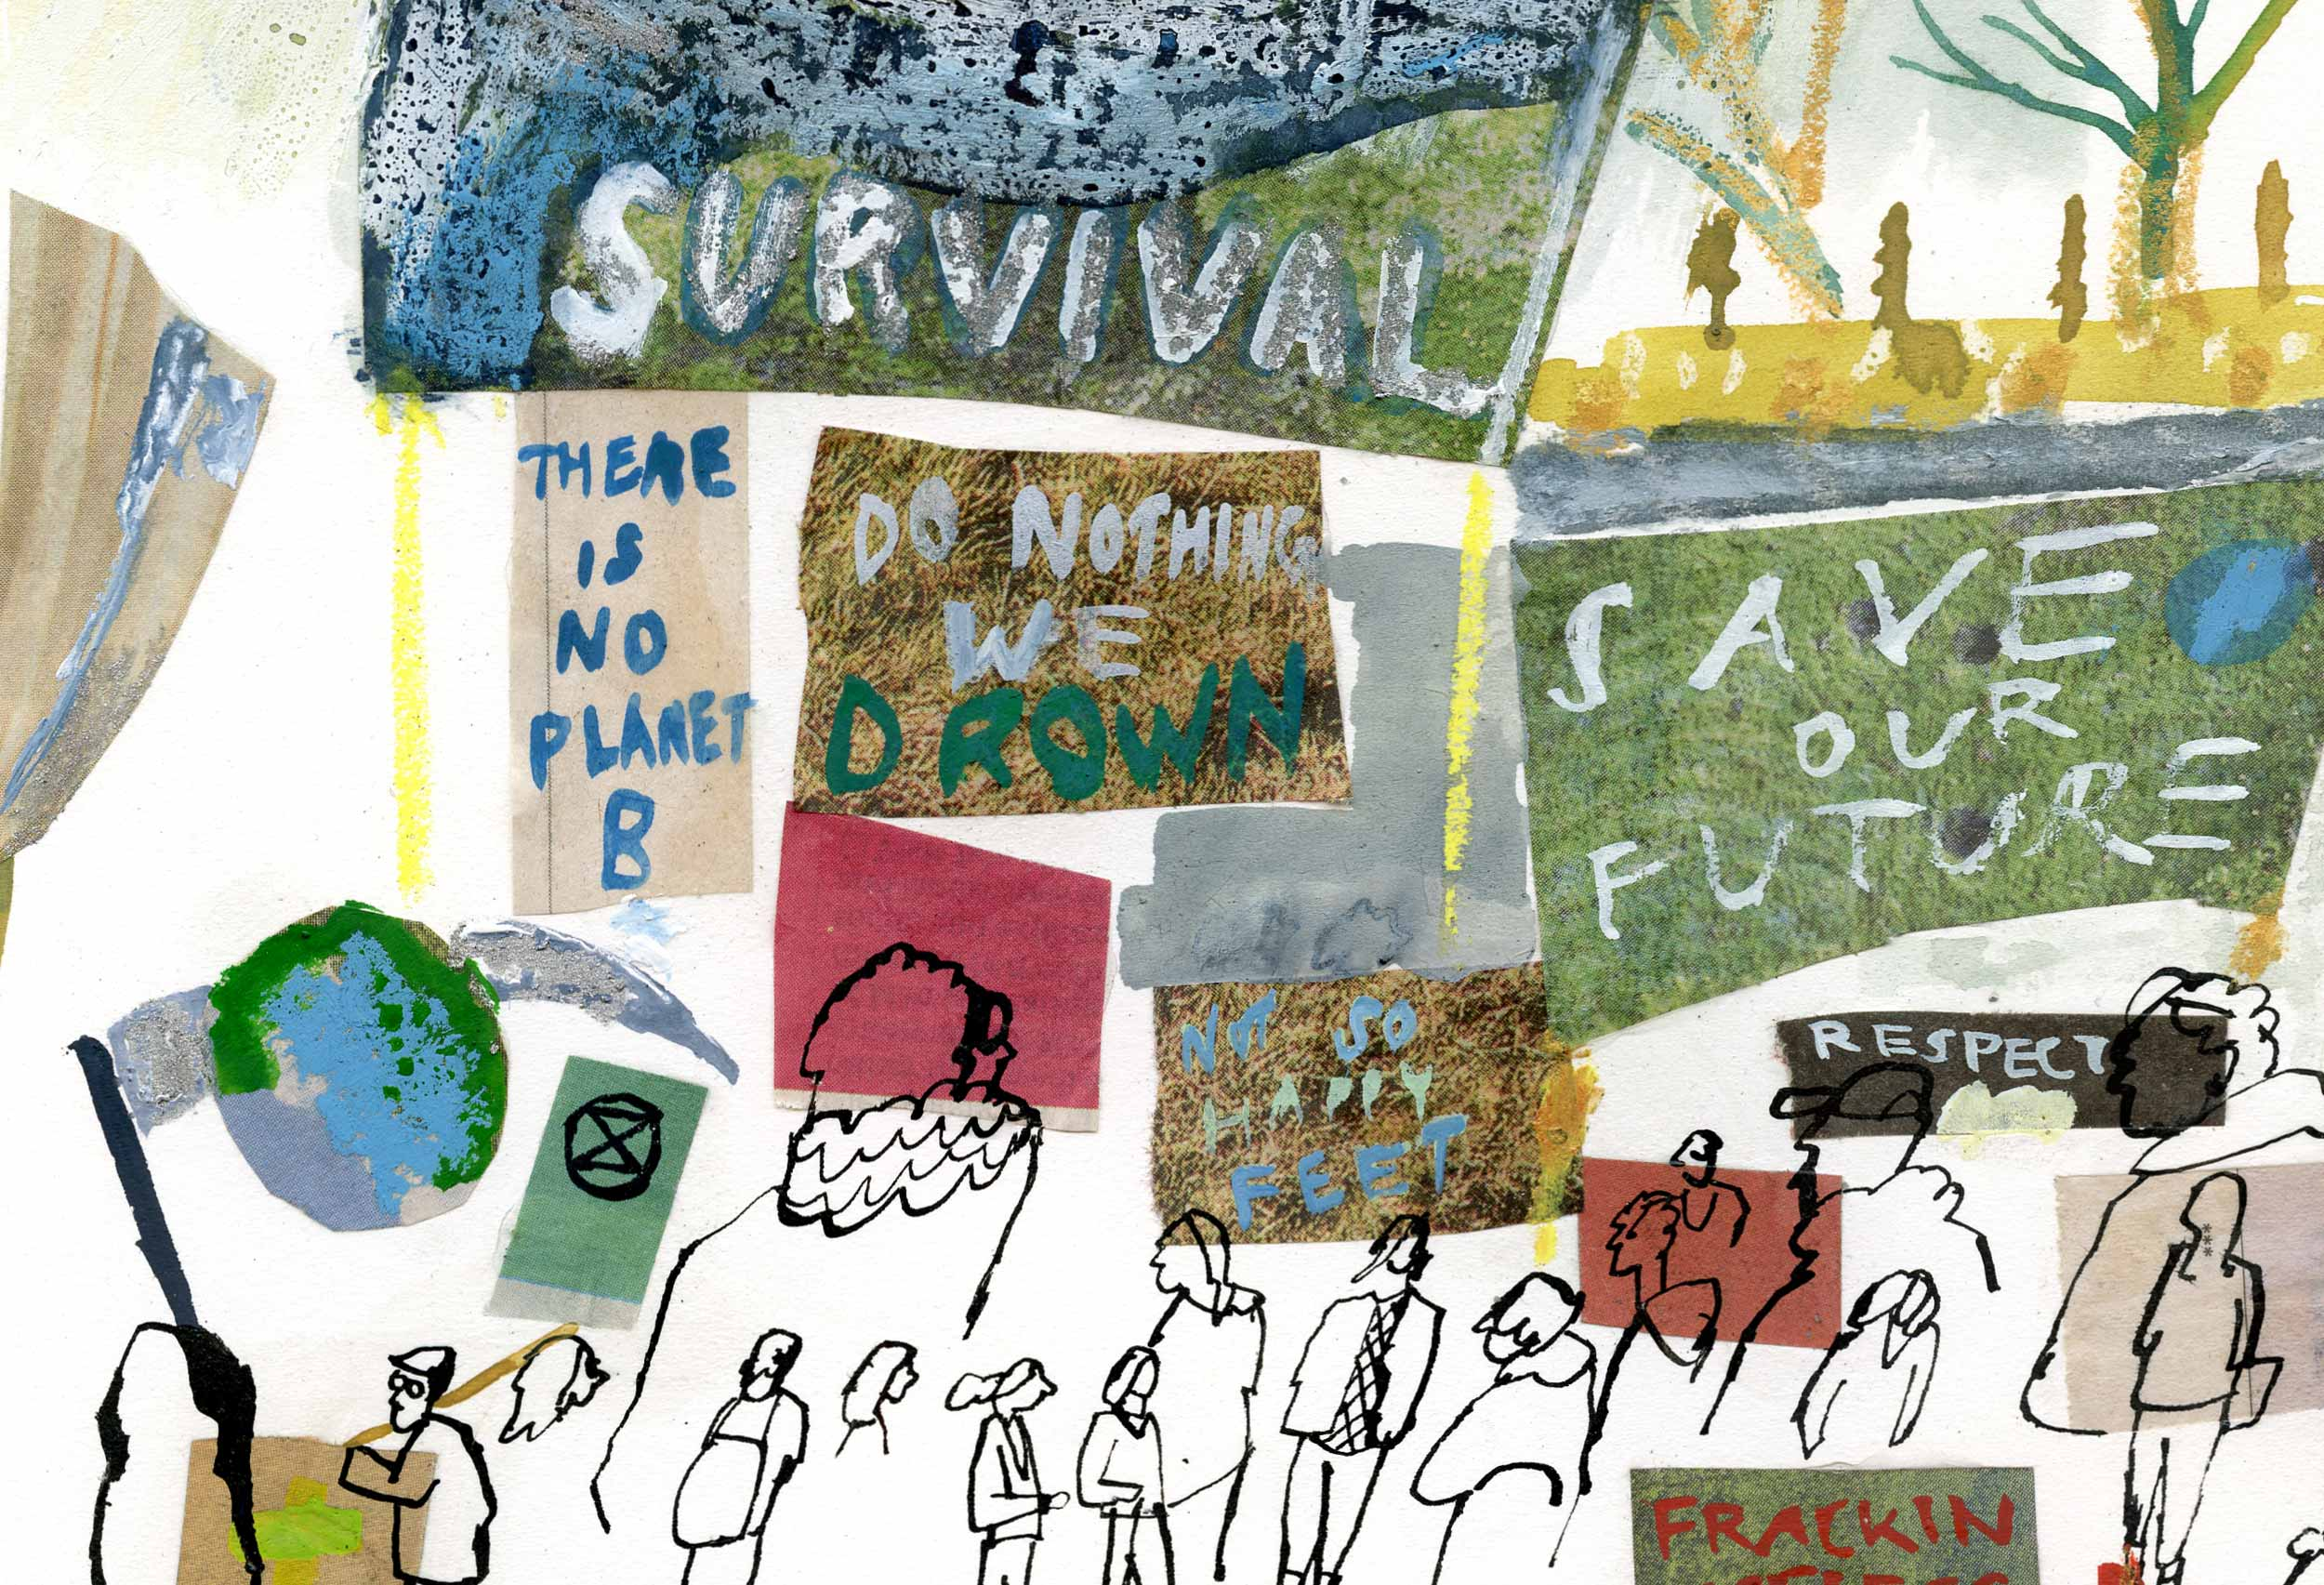 School strike for climate by James Oses, image 2